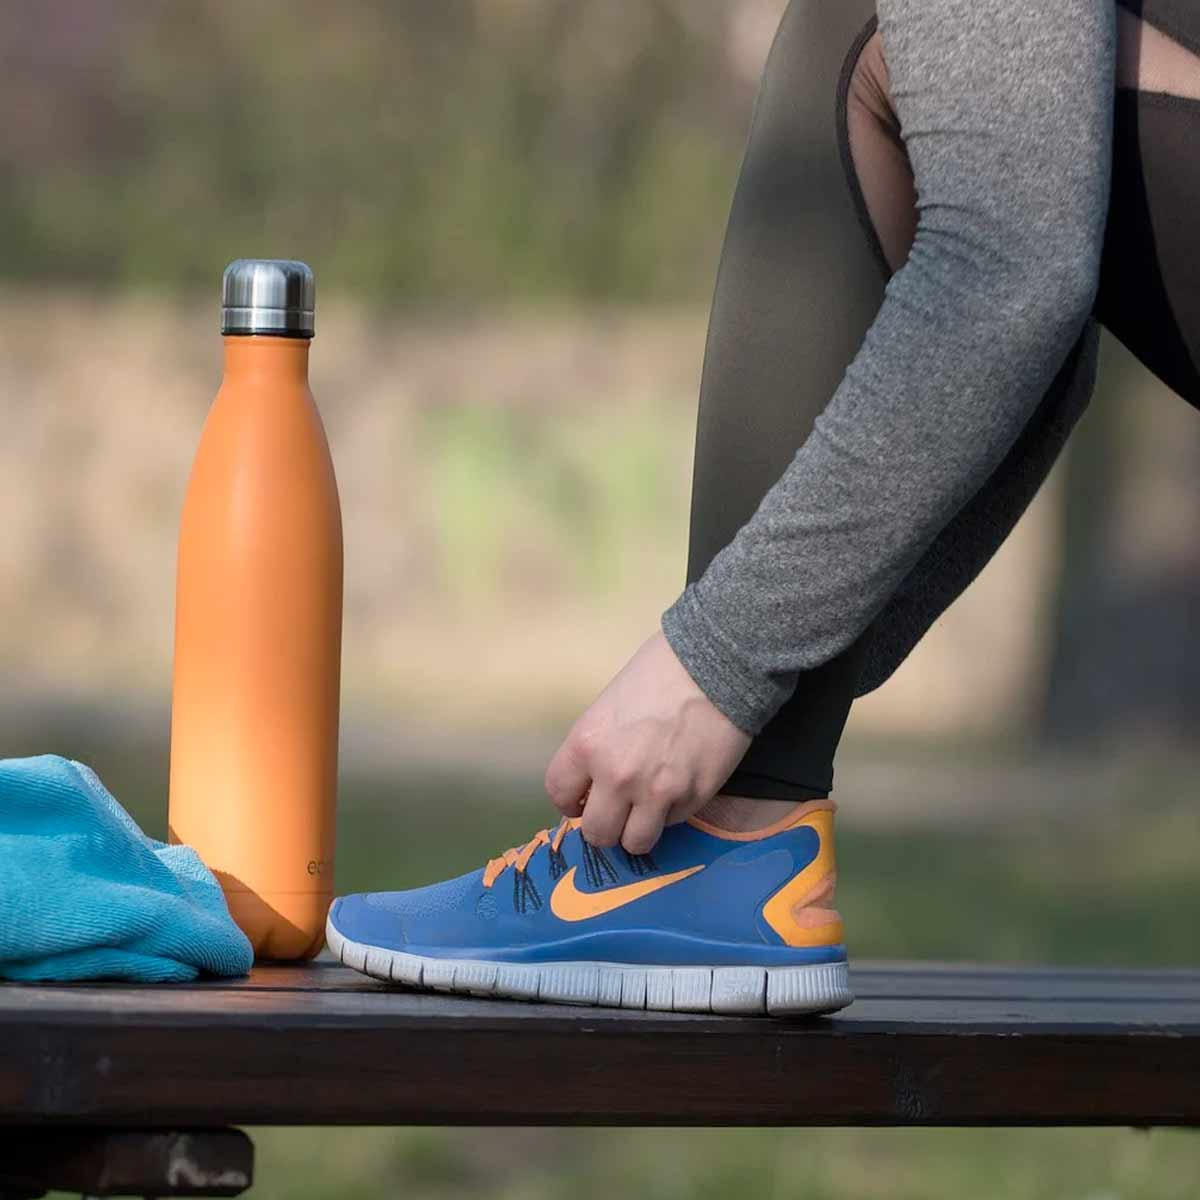 Women ready for exercise and tying her shoelaces - Weight loss myths